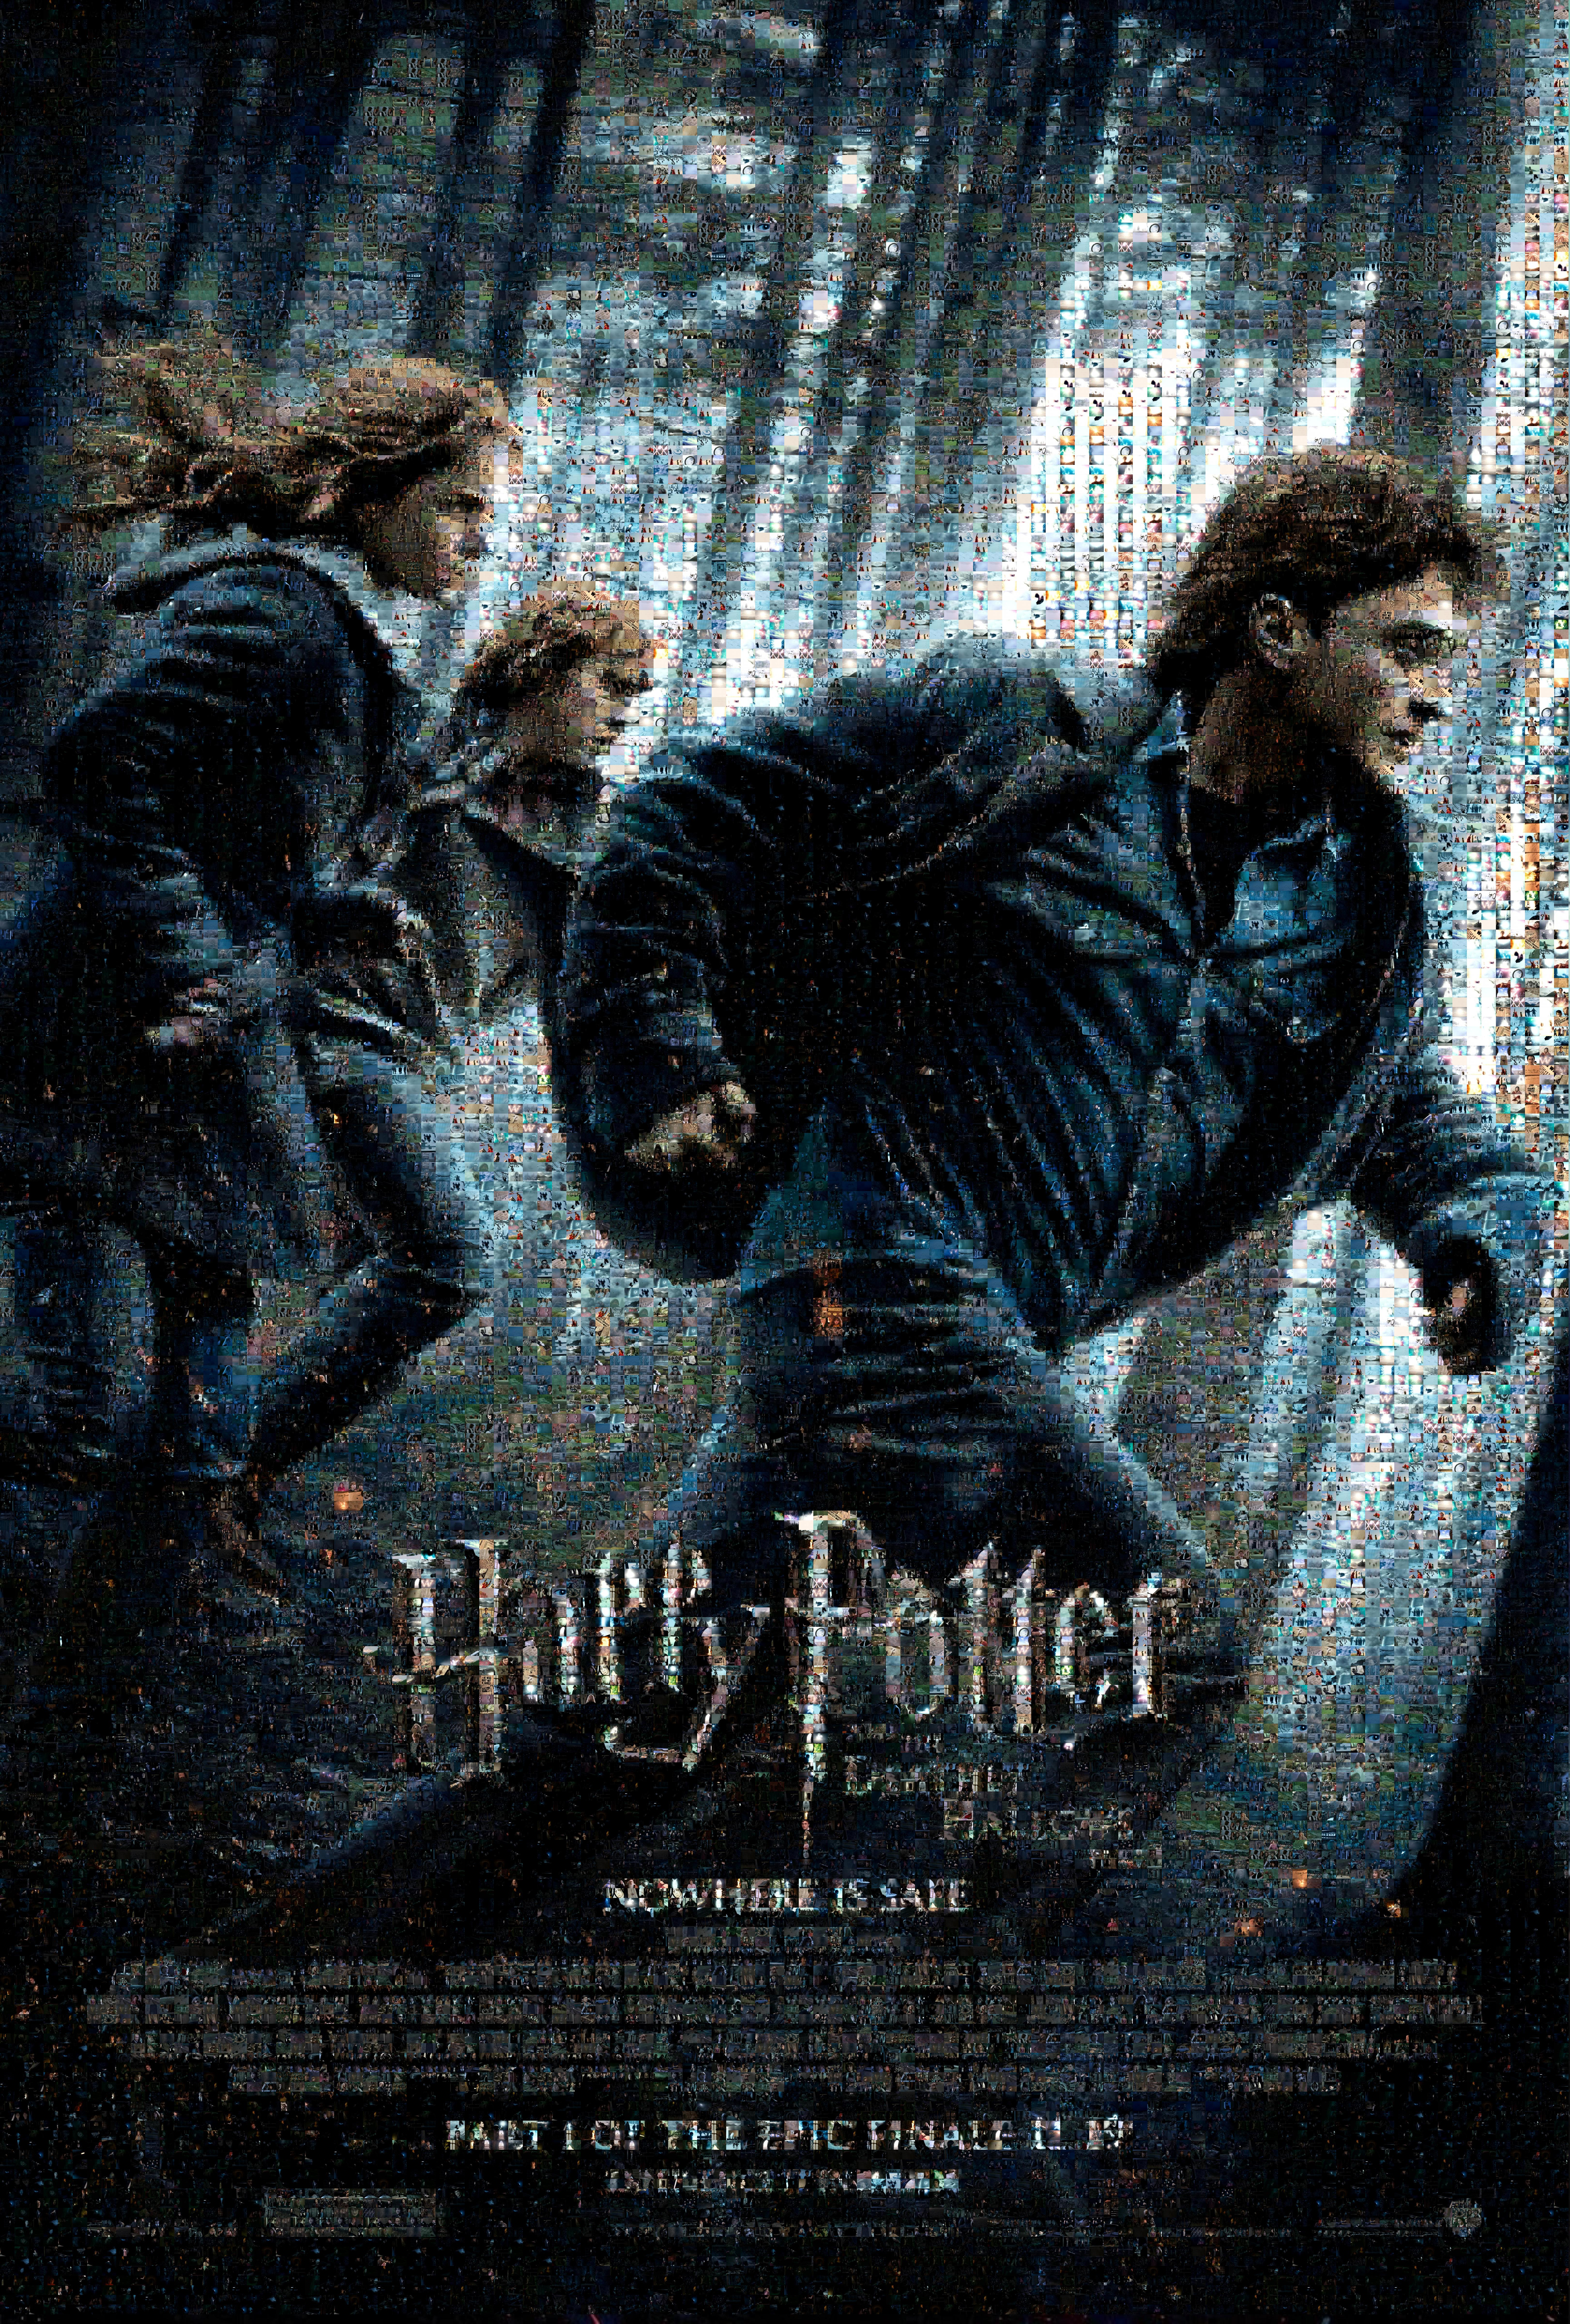 Deathy Hallows Poster2 Mosaic